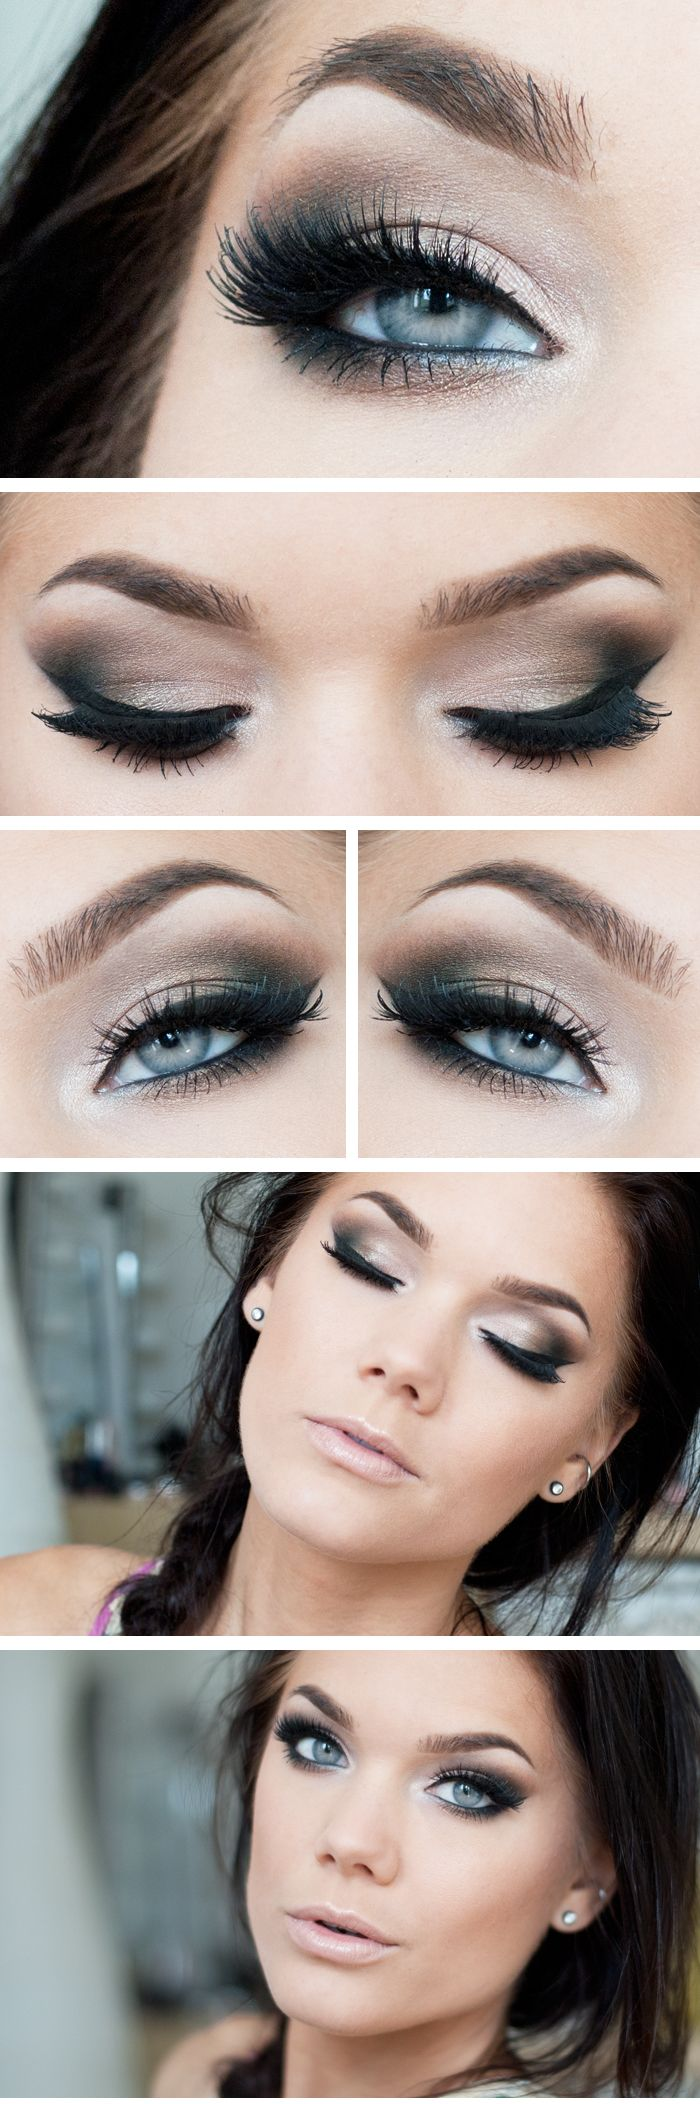 """Today's Look : """"Between the raindrops"""" -Linda Hallberg ( today's look is all about the lush lashes. A gorgeous nude smokey eye with nude lips)06/14/13"""